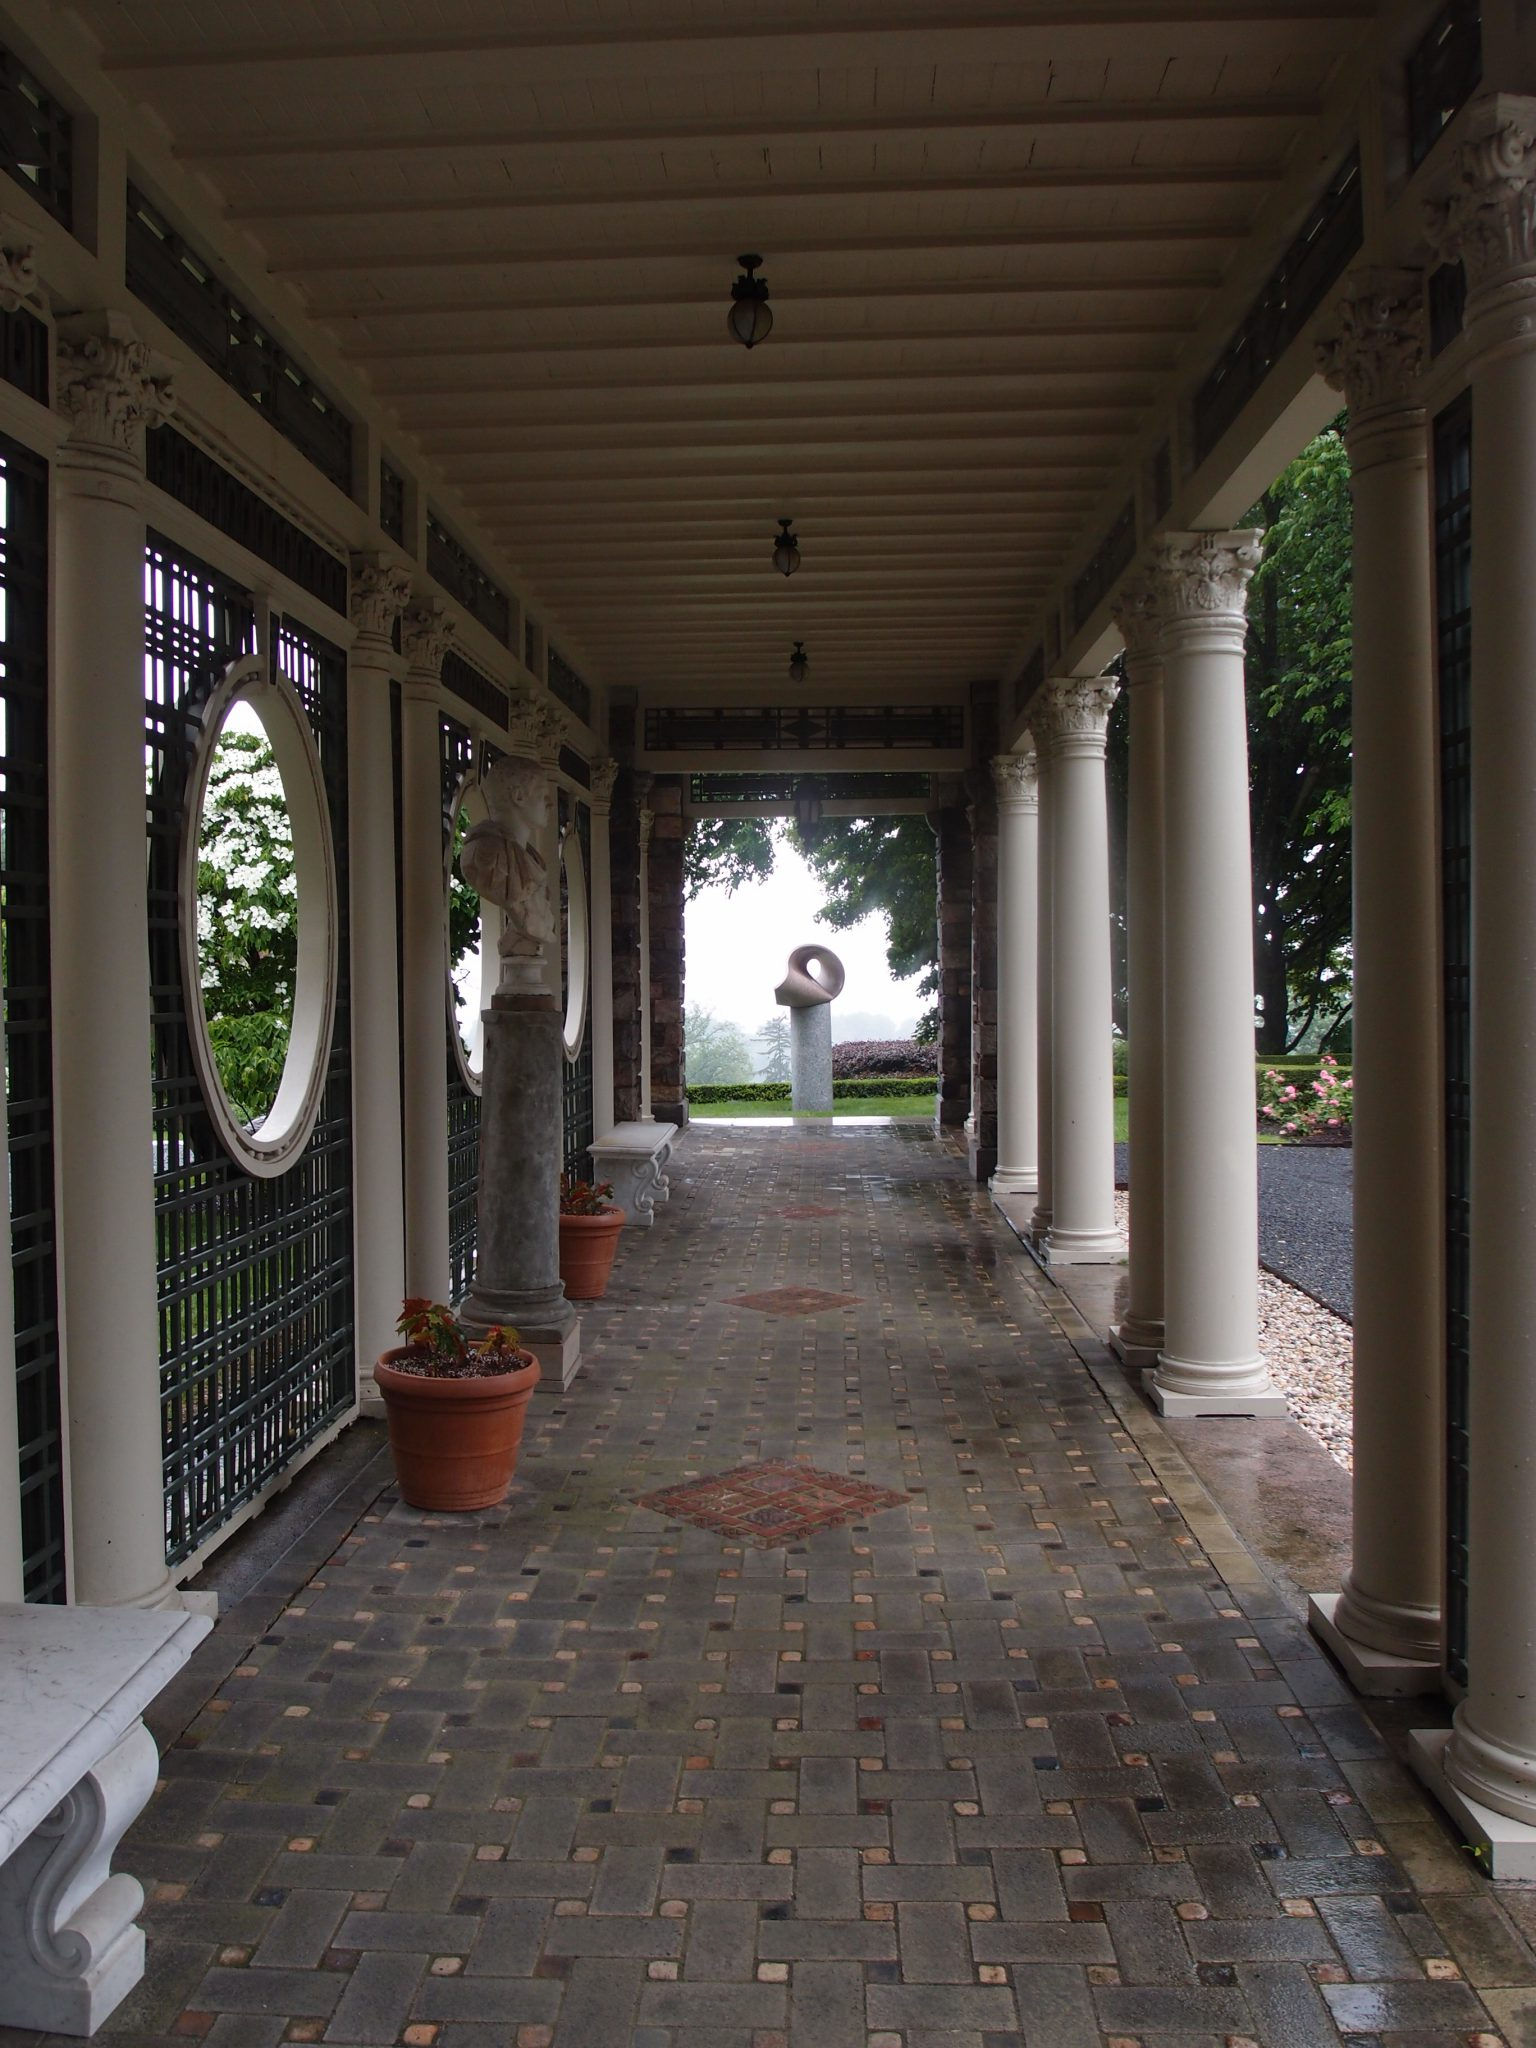 Max Bill's TRIANGULAR SURFACE IN SPACE (1962) is mounted at the west end of the Rose Garden Loggia